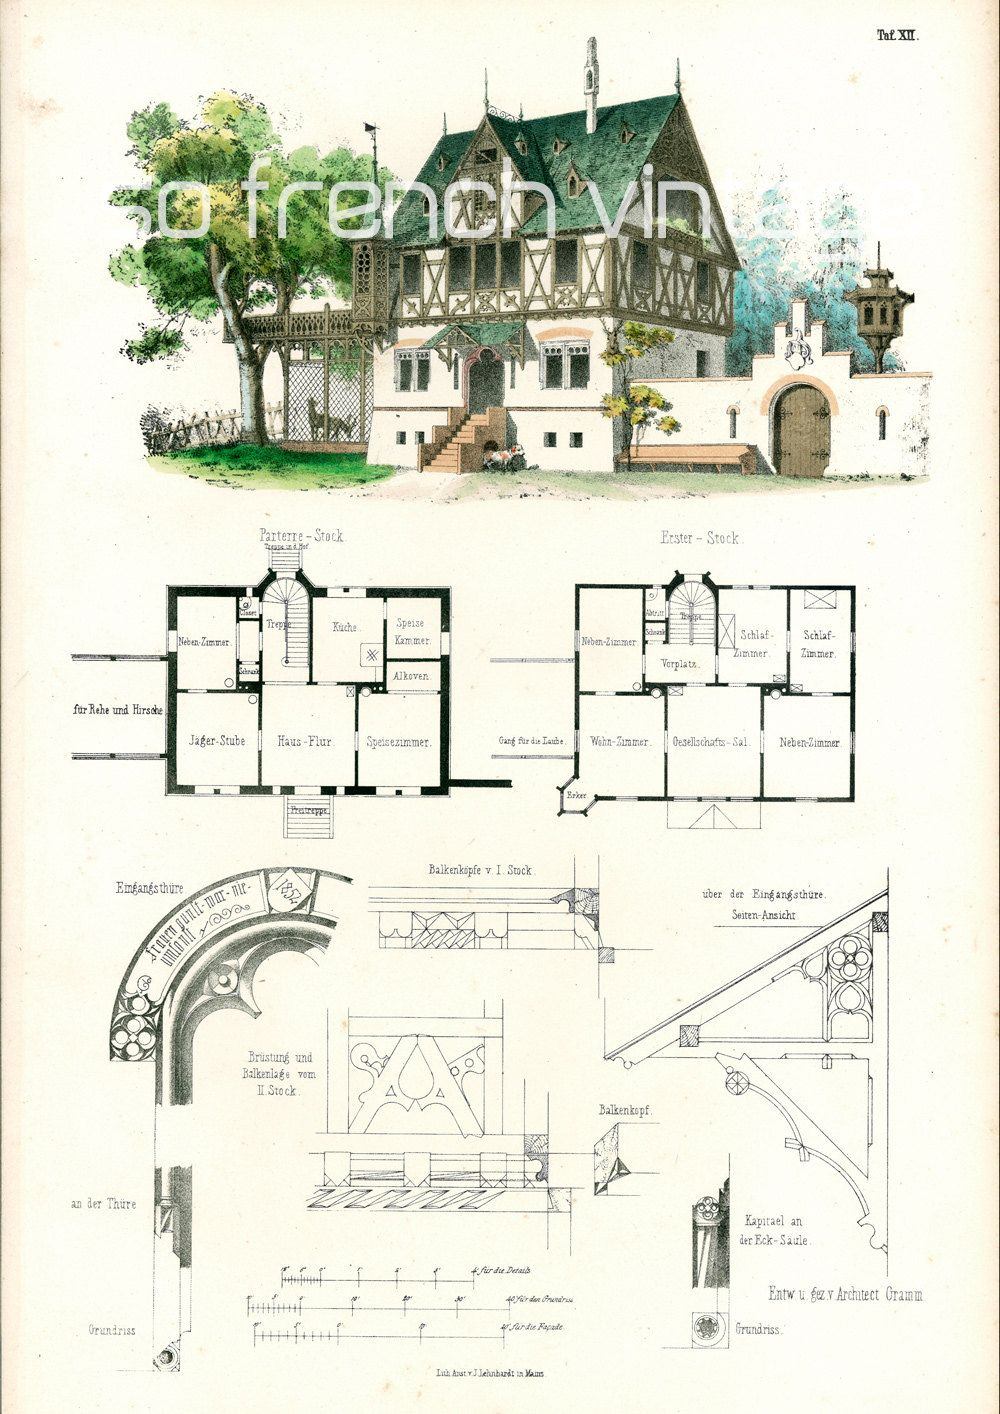 1854 maison foresti re plans d 39 architecte format a3 for Architecte plan maison